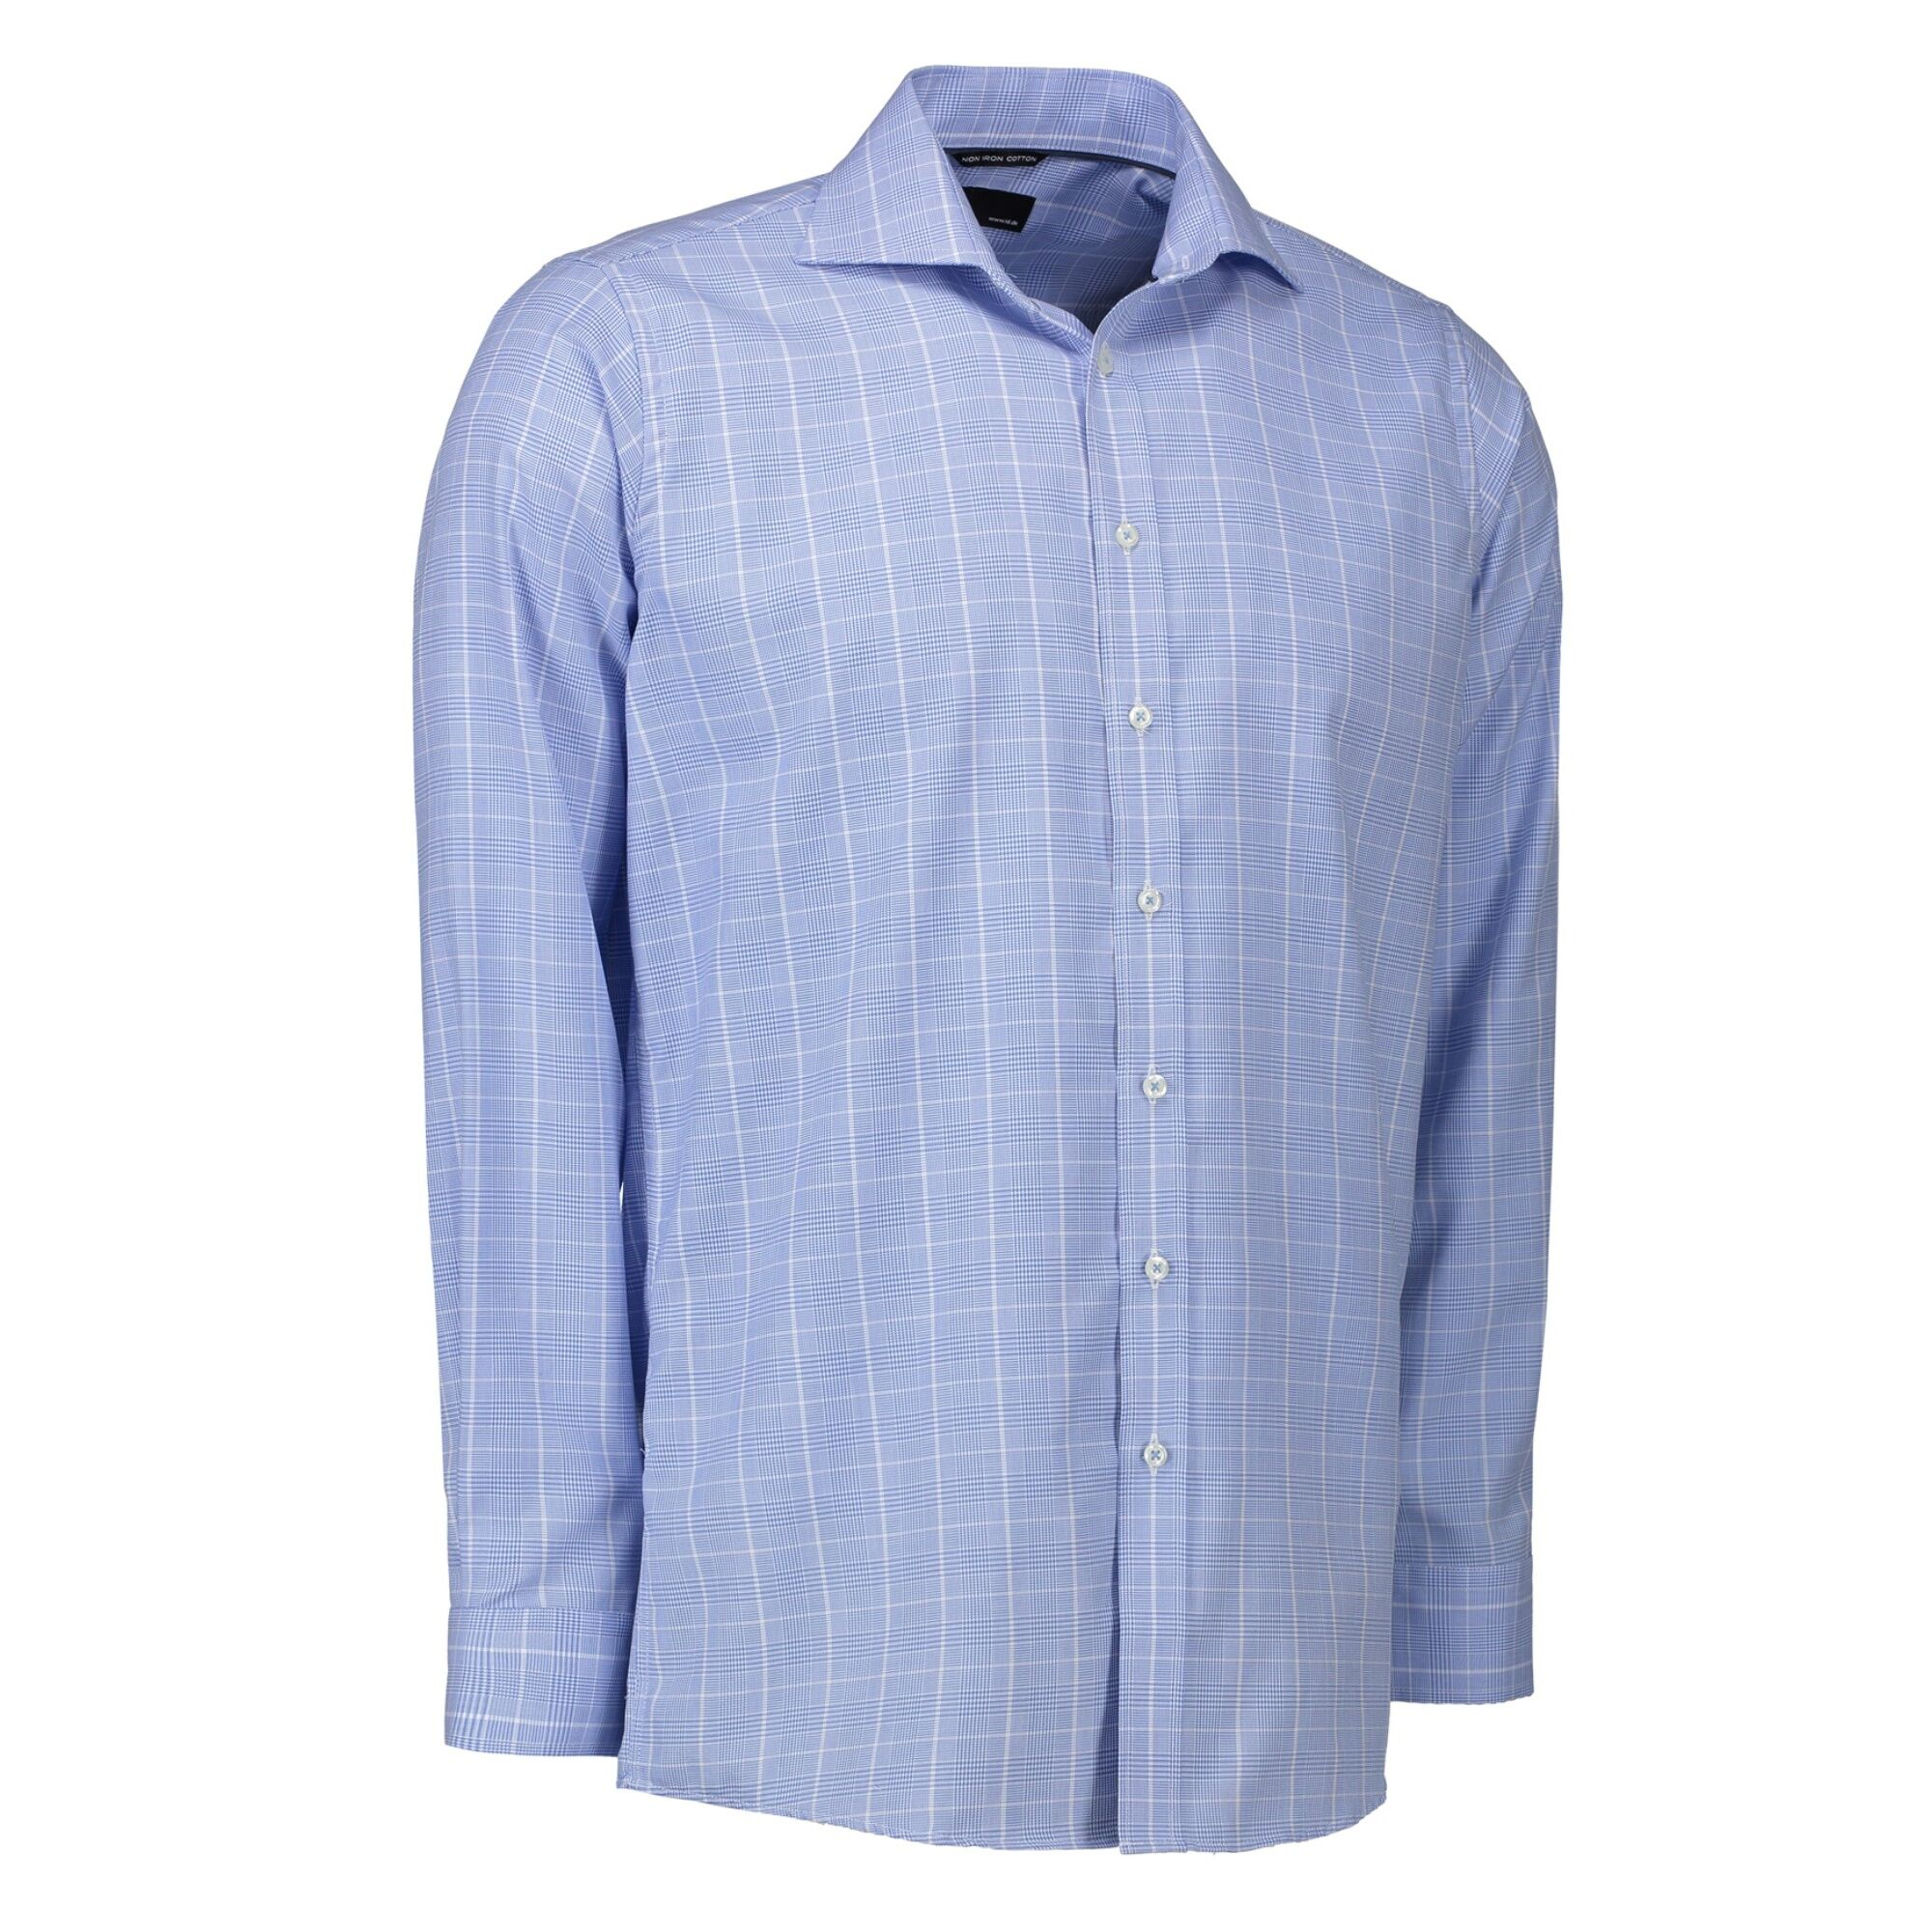 Id Exlusive - Chemise En Coton - Homme (Pacino) - UTID410